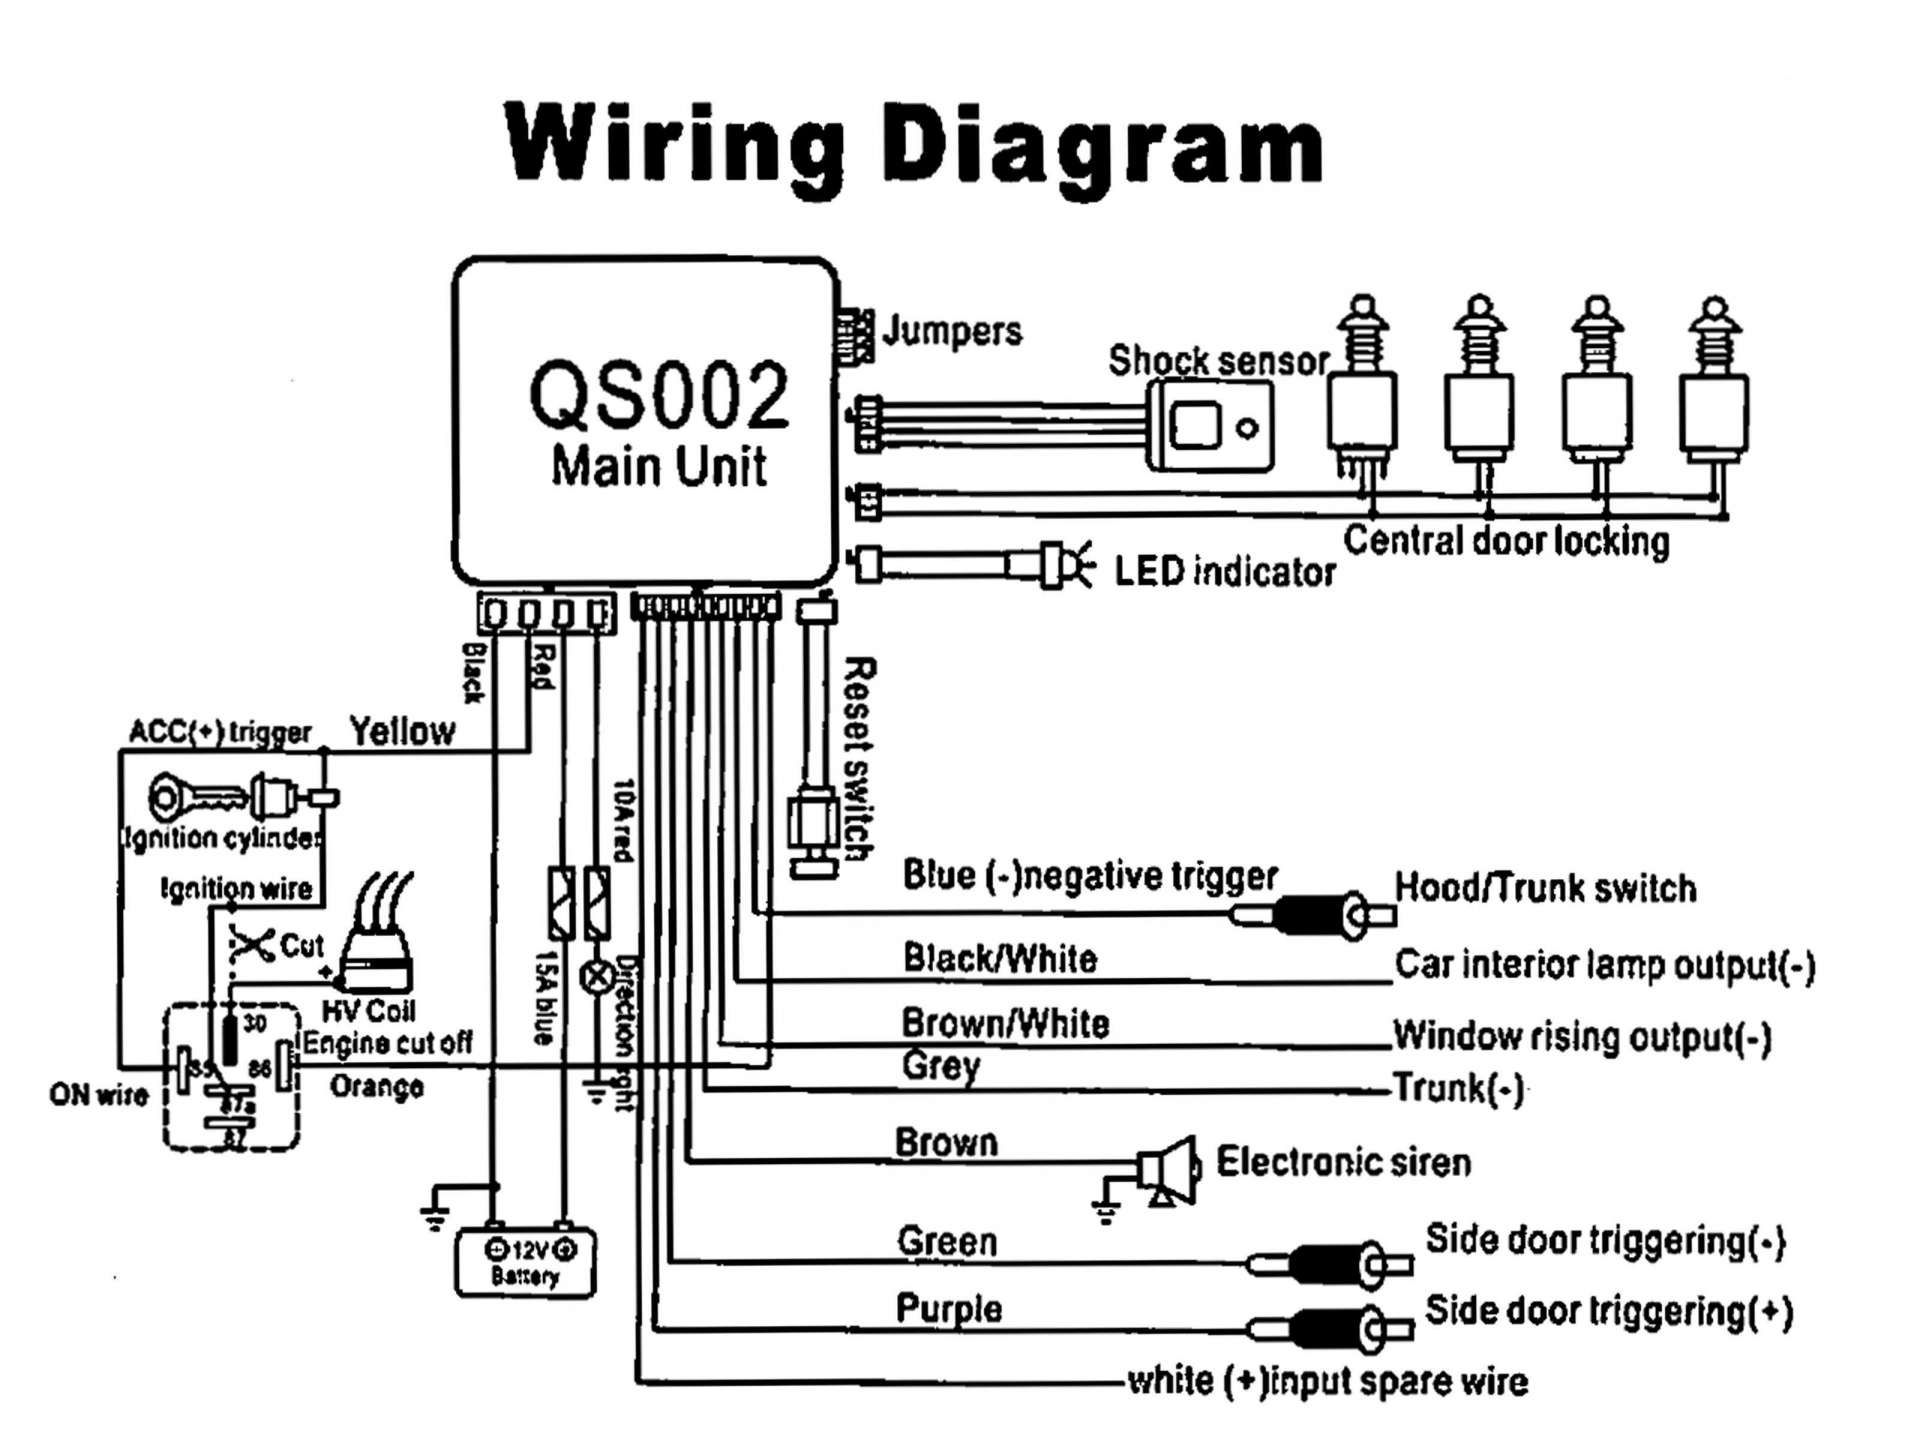 17+ Plc Car Alarm Wiring Diagram - Car Diagram - Wiringg.net | Car alarm,  Diagram, Electrical circuit diagramPinterest